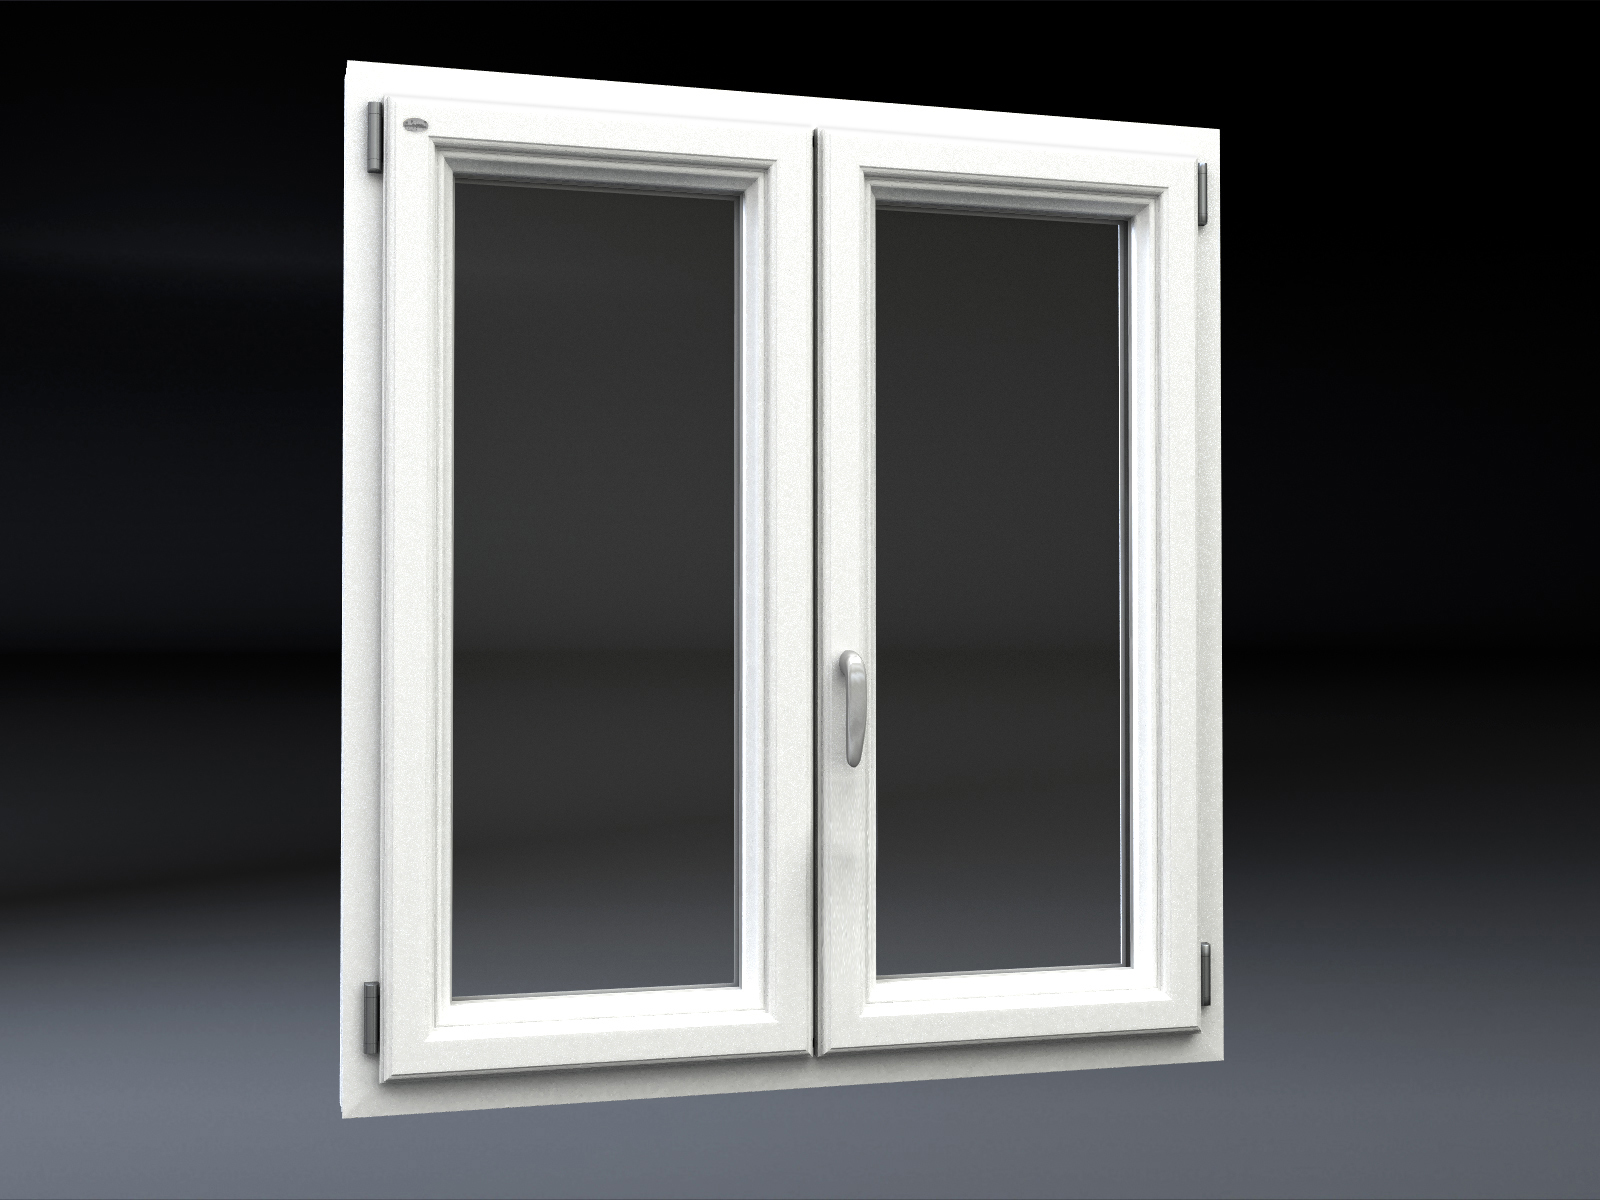 Types Of Opening Casement Window Finestre Nurith